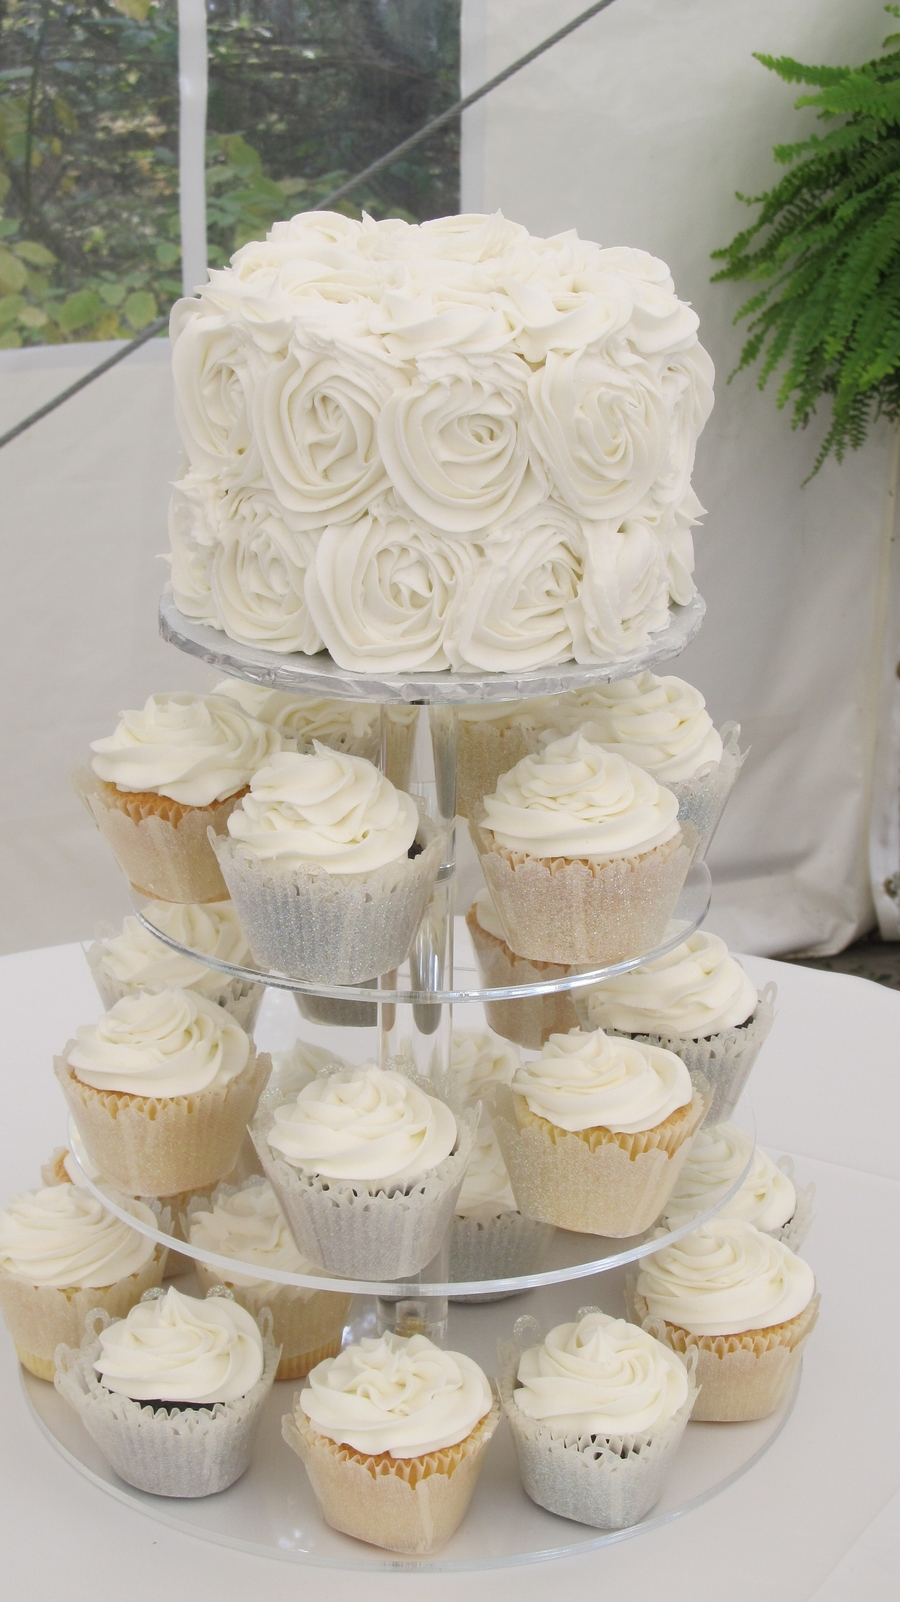 Rosette Wedding Cake on Cake Central